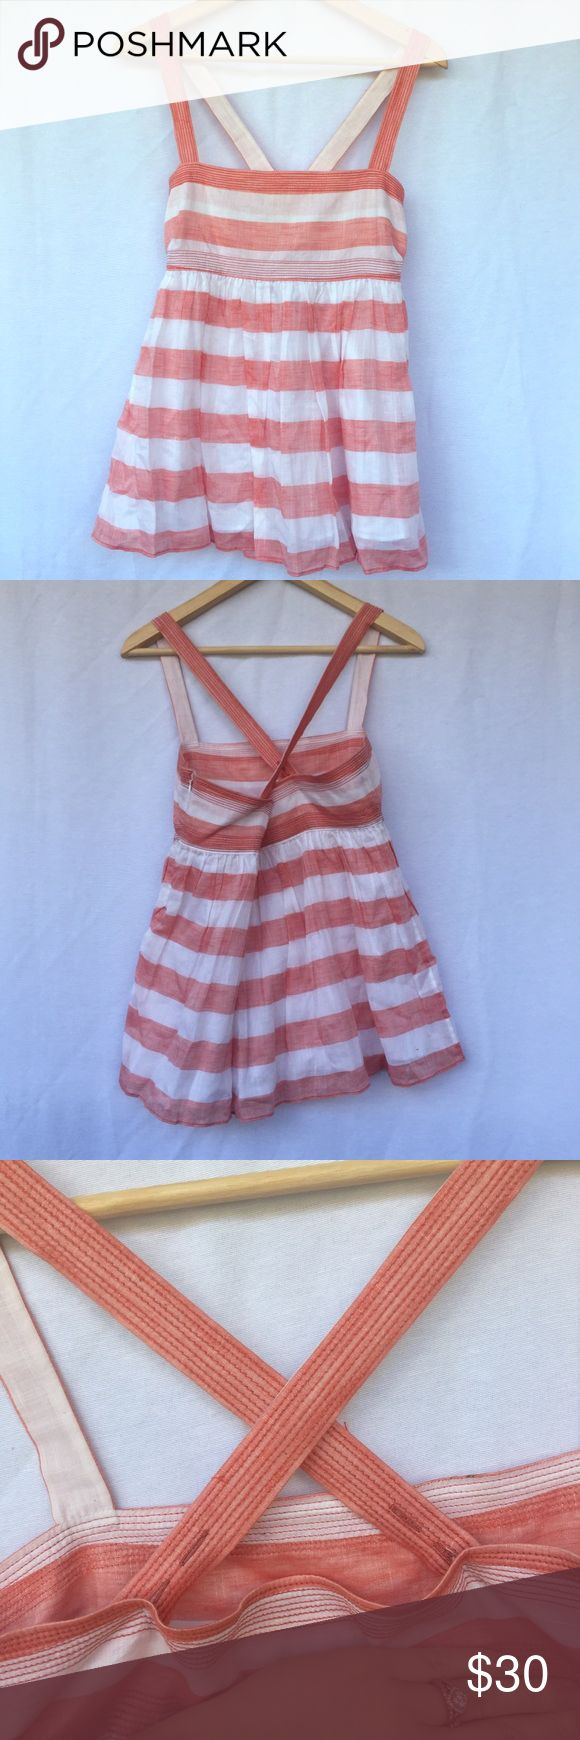 RARE J Crew Talitha Salmon Striped Cami Very rare. Perfect condition. Lightweight cotton material. Perfect summer top. Babydoll style. Adjustable button straps. J. Crew Tops Camisoles